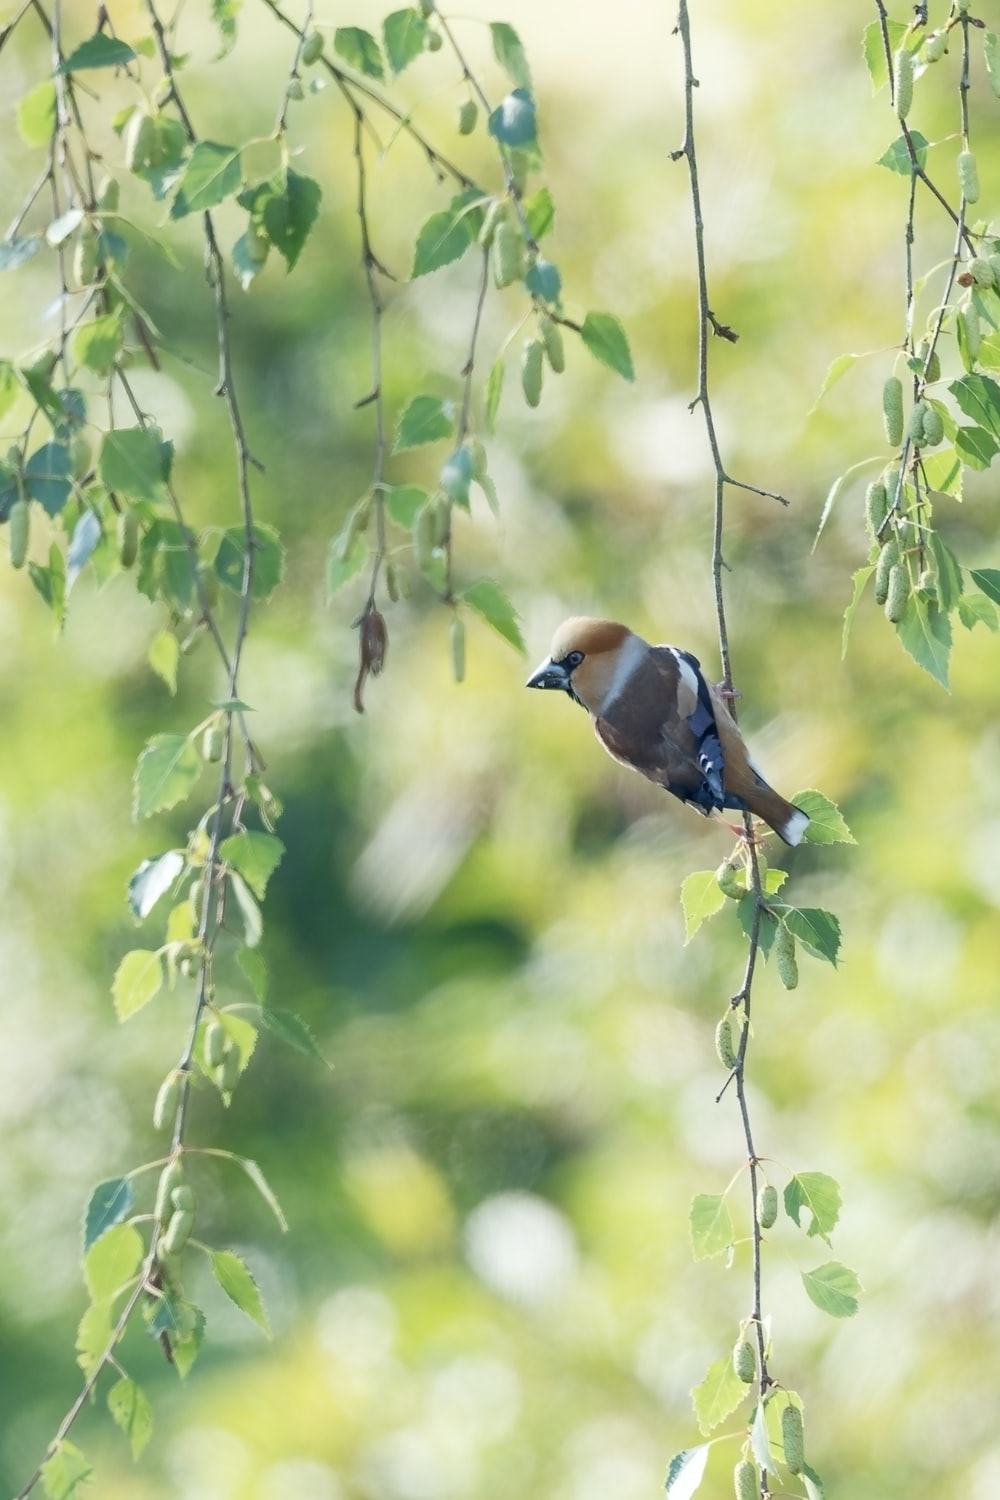 brown and blue bird on tree branch during daytime